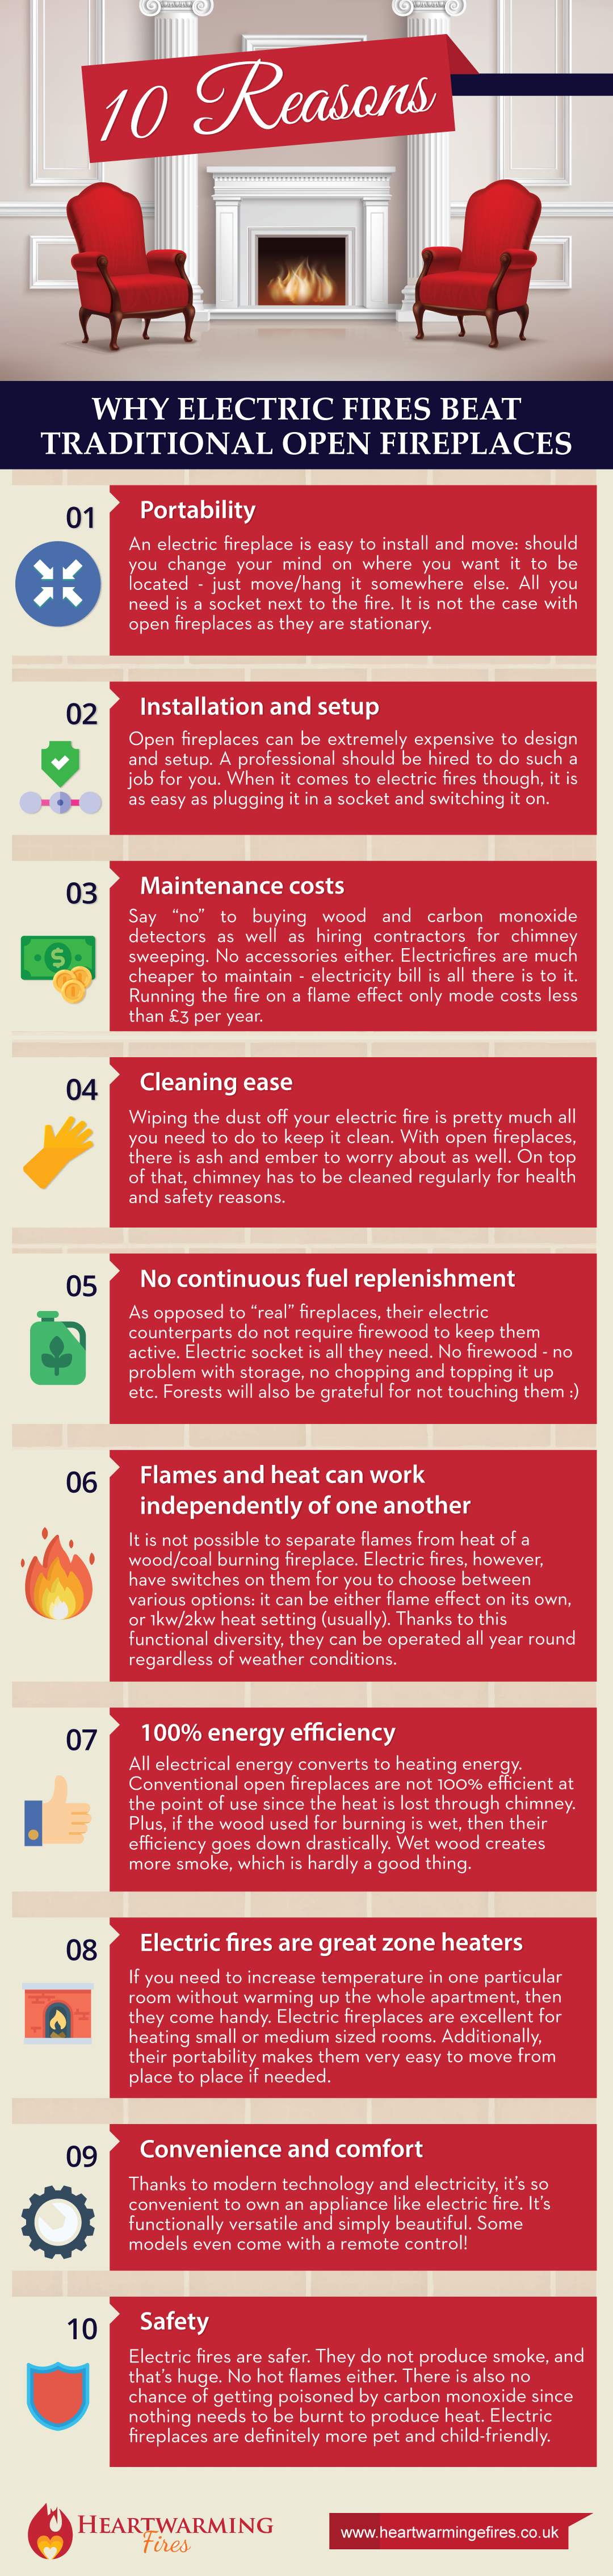 Electric fireplaces are awesome infographic